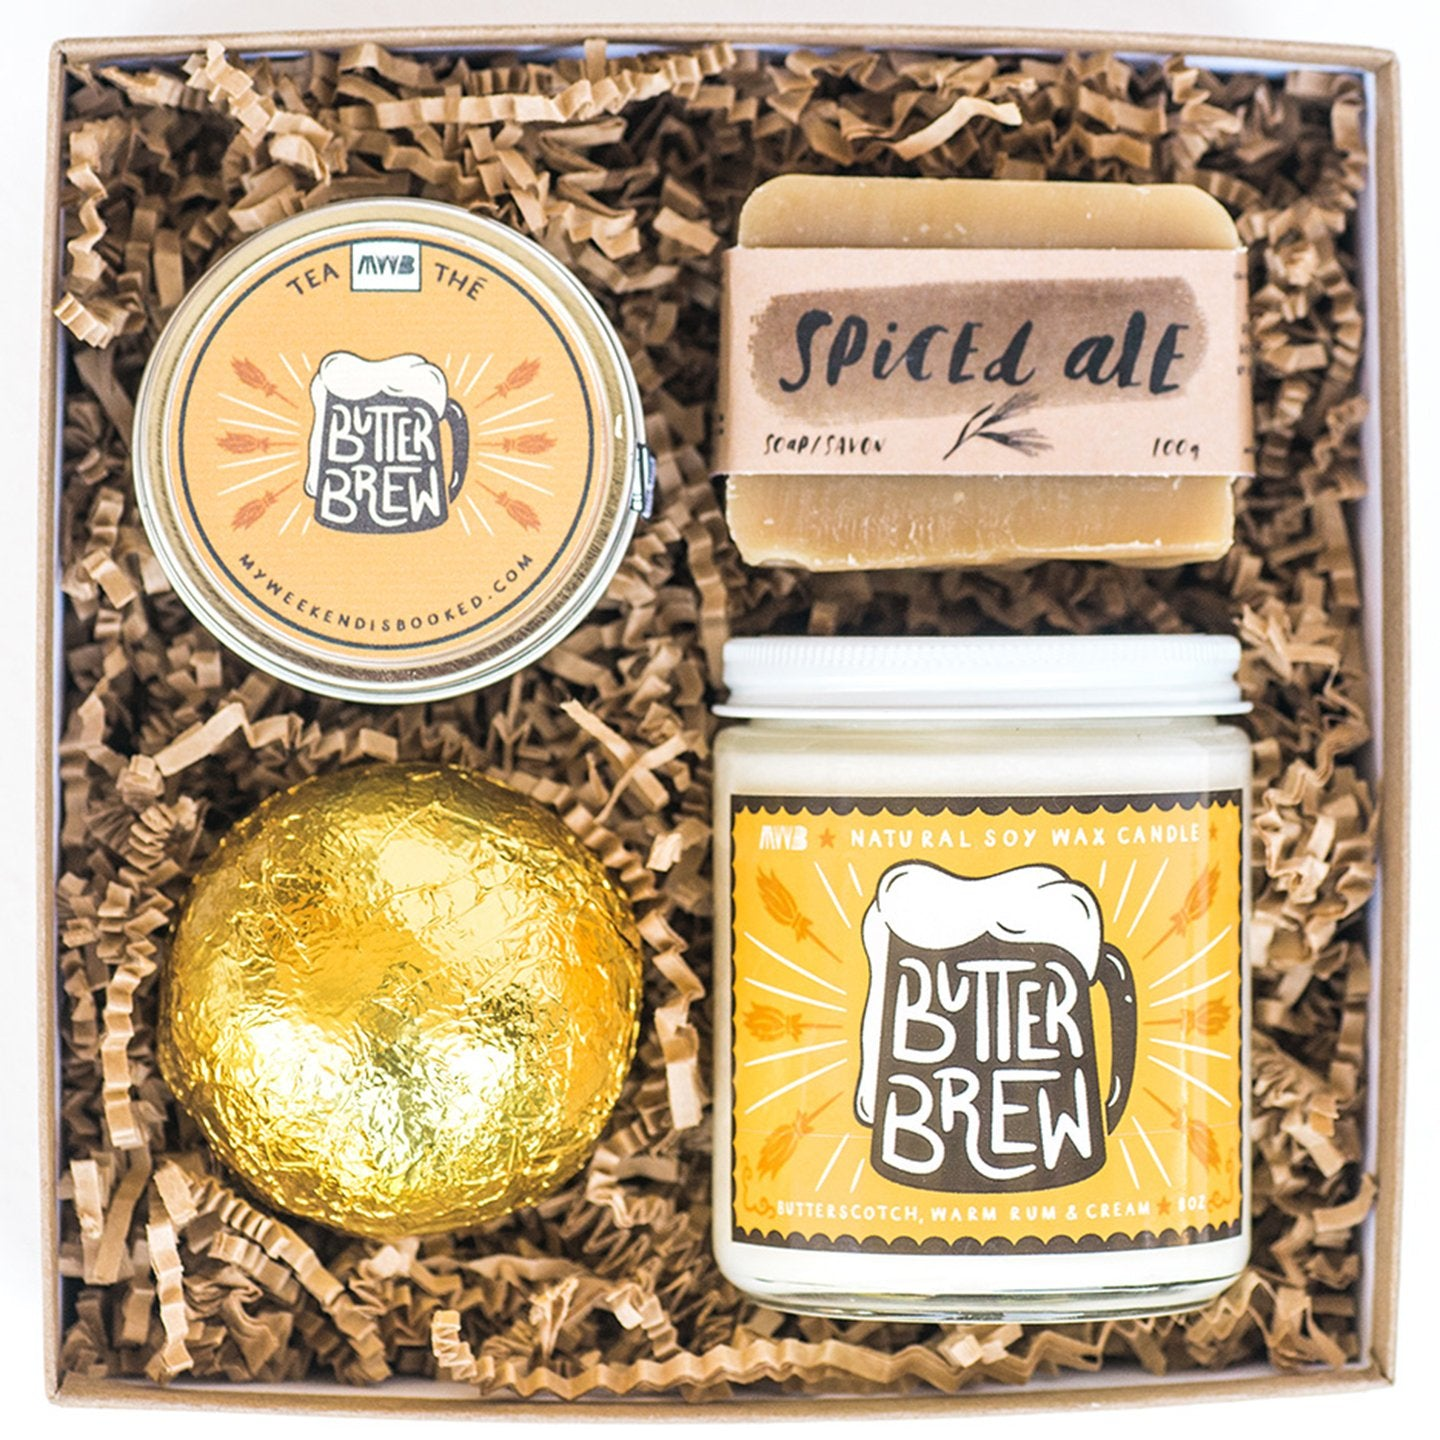 butterbeer curated gift box gifts for beer lovers my weekend is booked client gift ideas